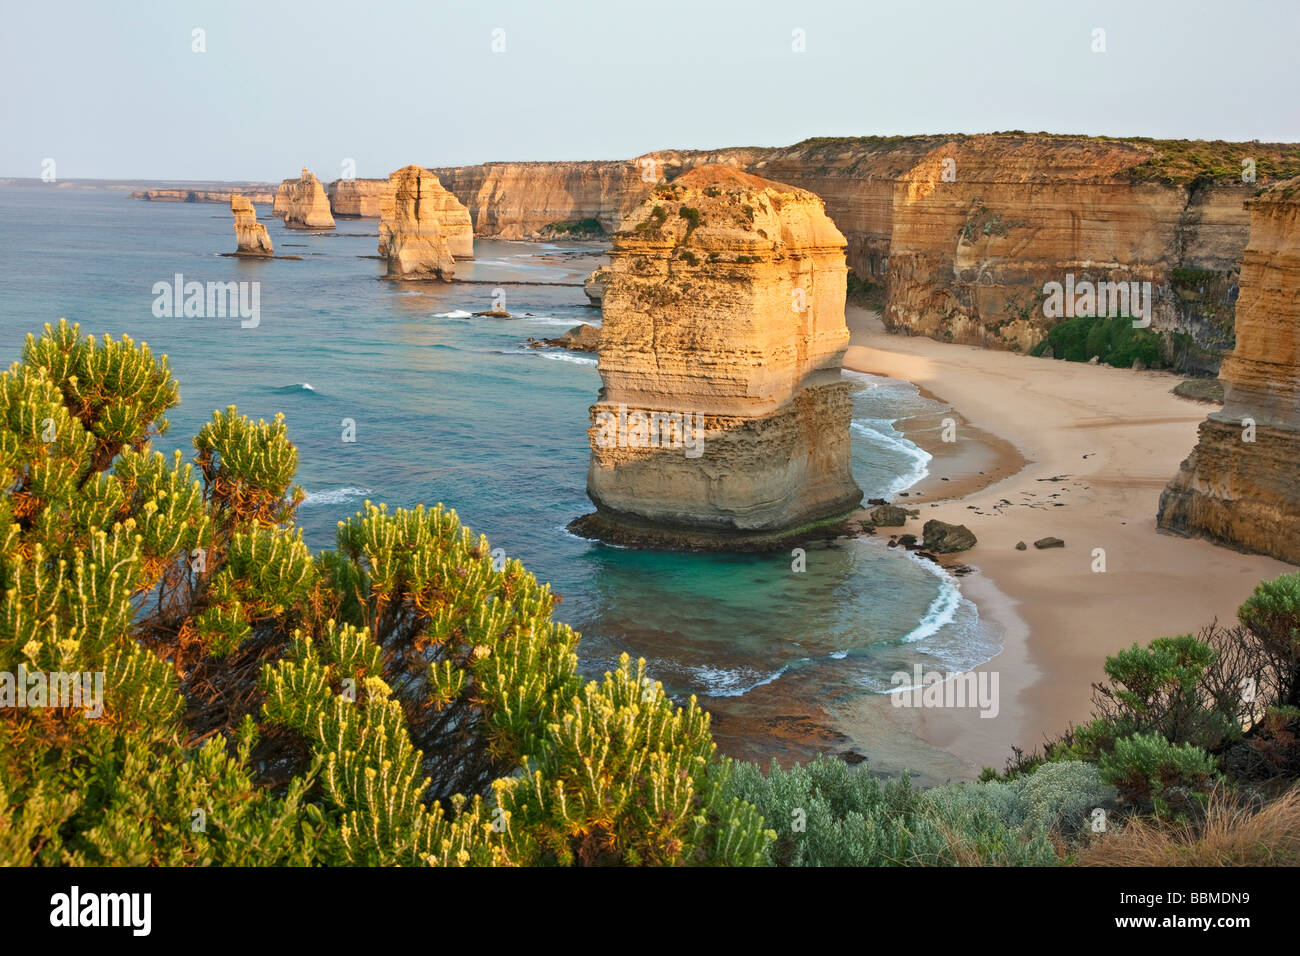 Australia, Victoria. Some of the Twelve Apostles standing in shallow water in the Port Campbell National Park. - Stock Image